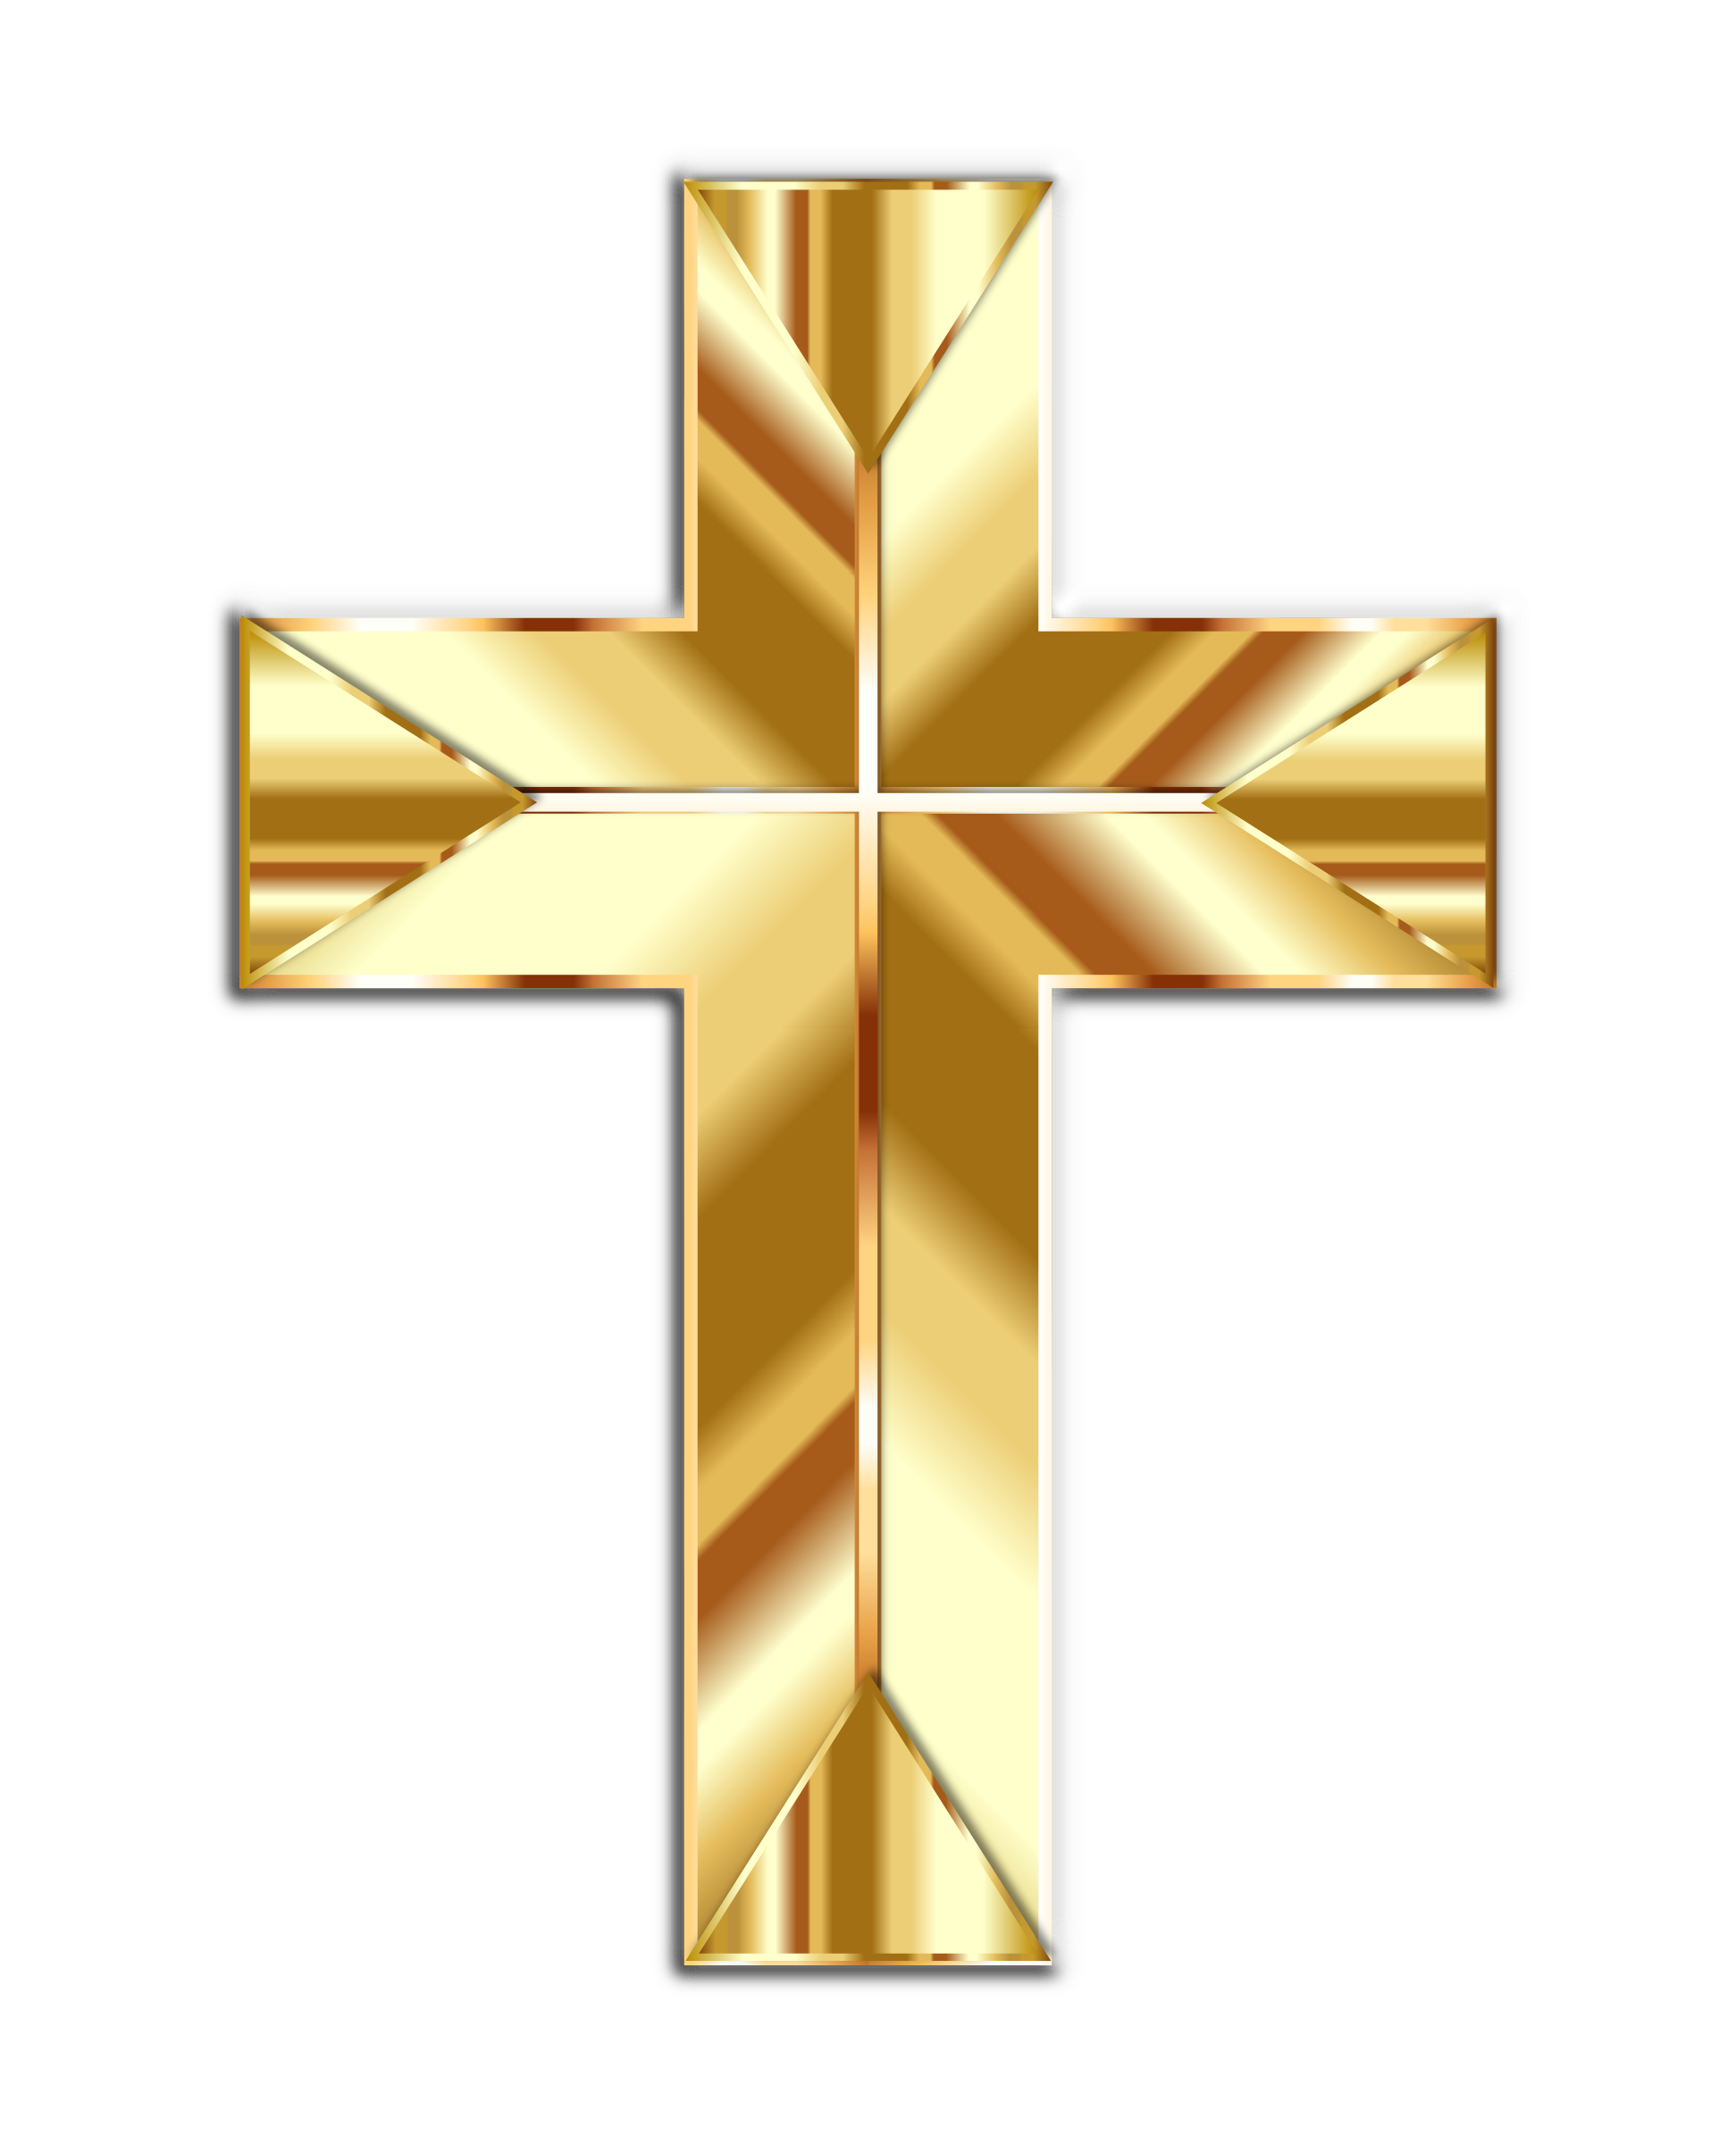 Golden Cross Fixed by GDJ